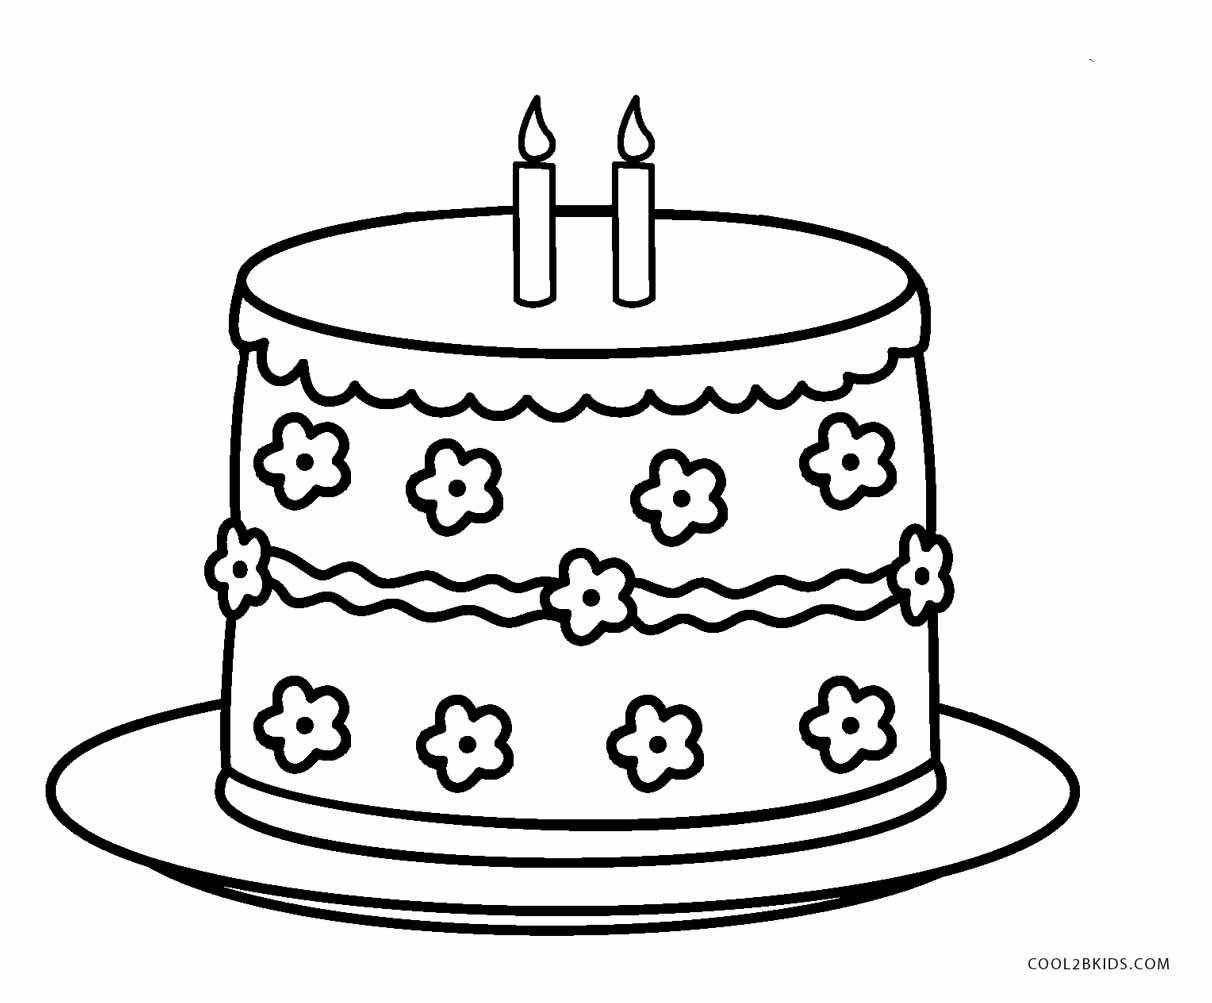 cake coloring image coloring pages coloring a cake image coloring cake